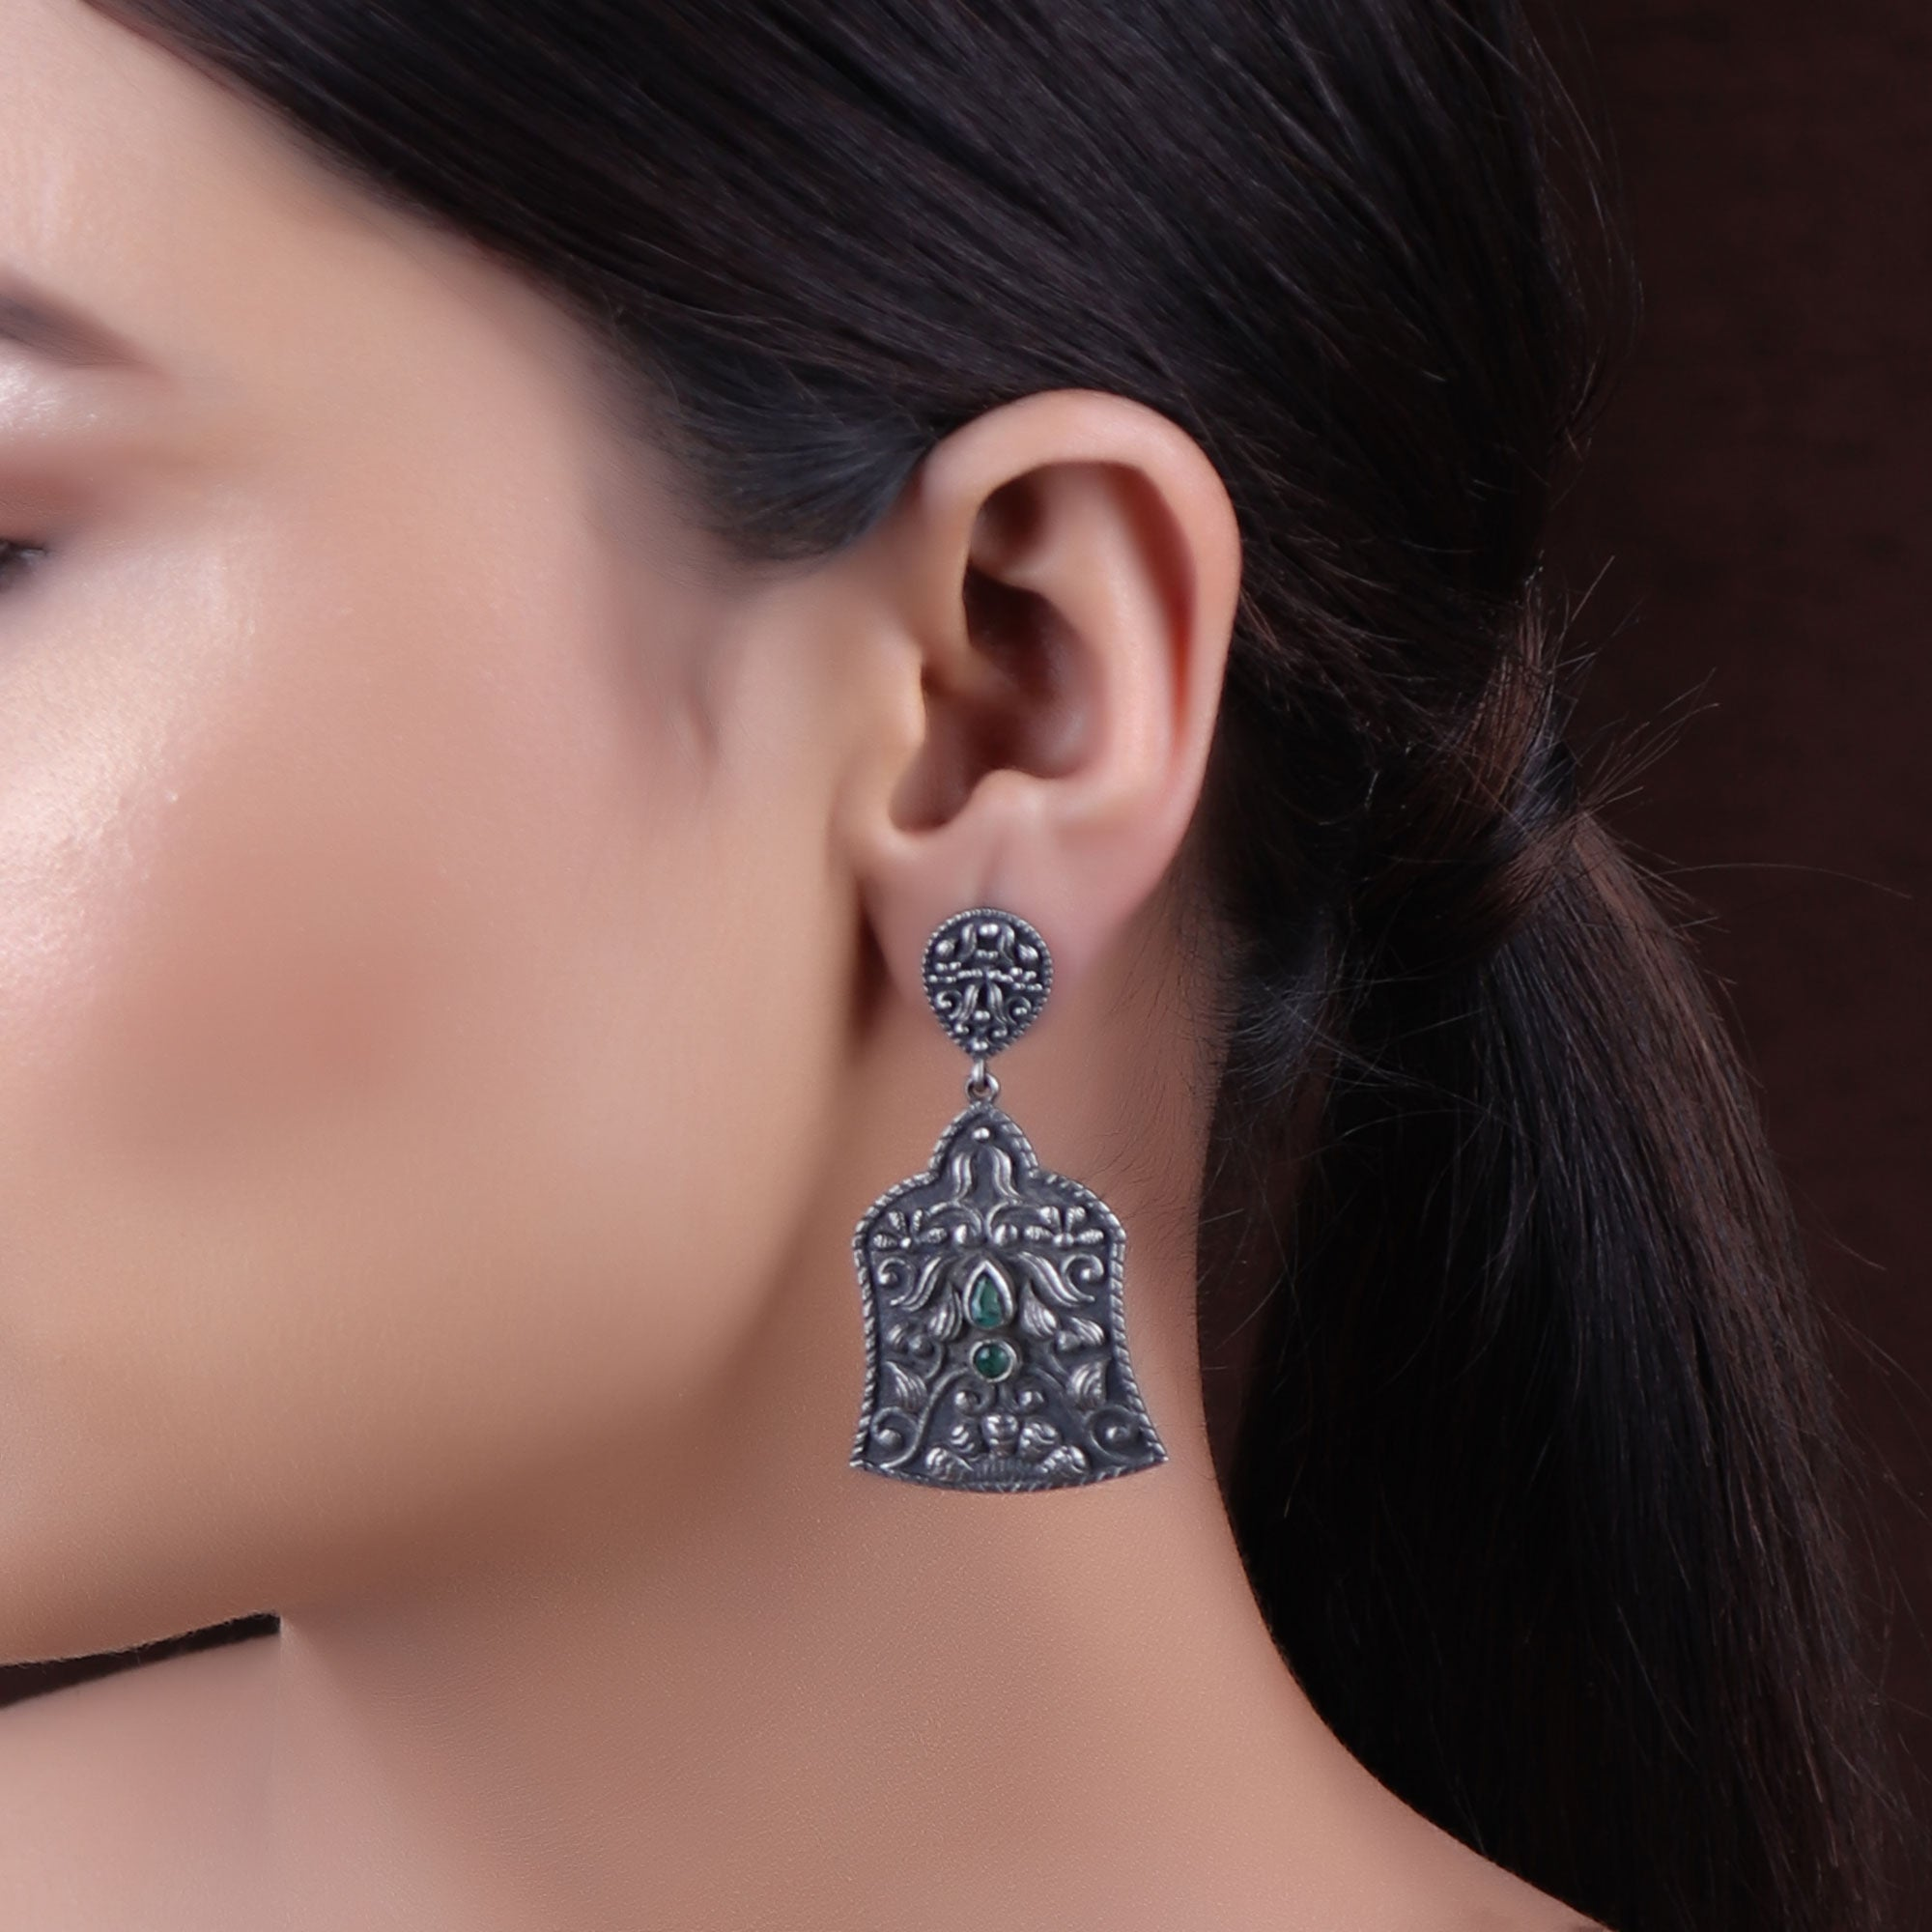 Earrings,The Lantern Silver Look Alike Earring with Green Stone - Cippele Multi Store